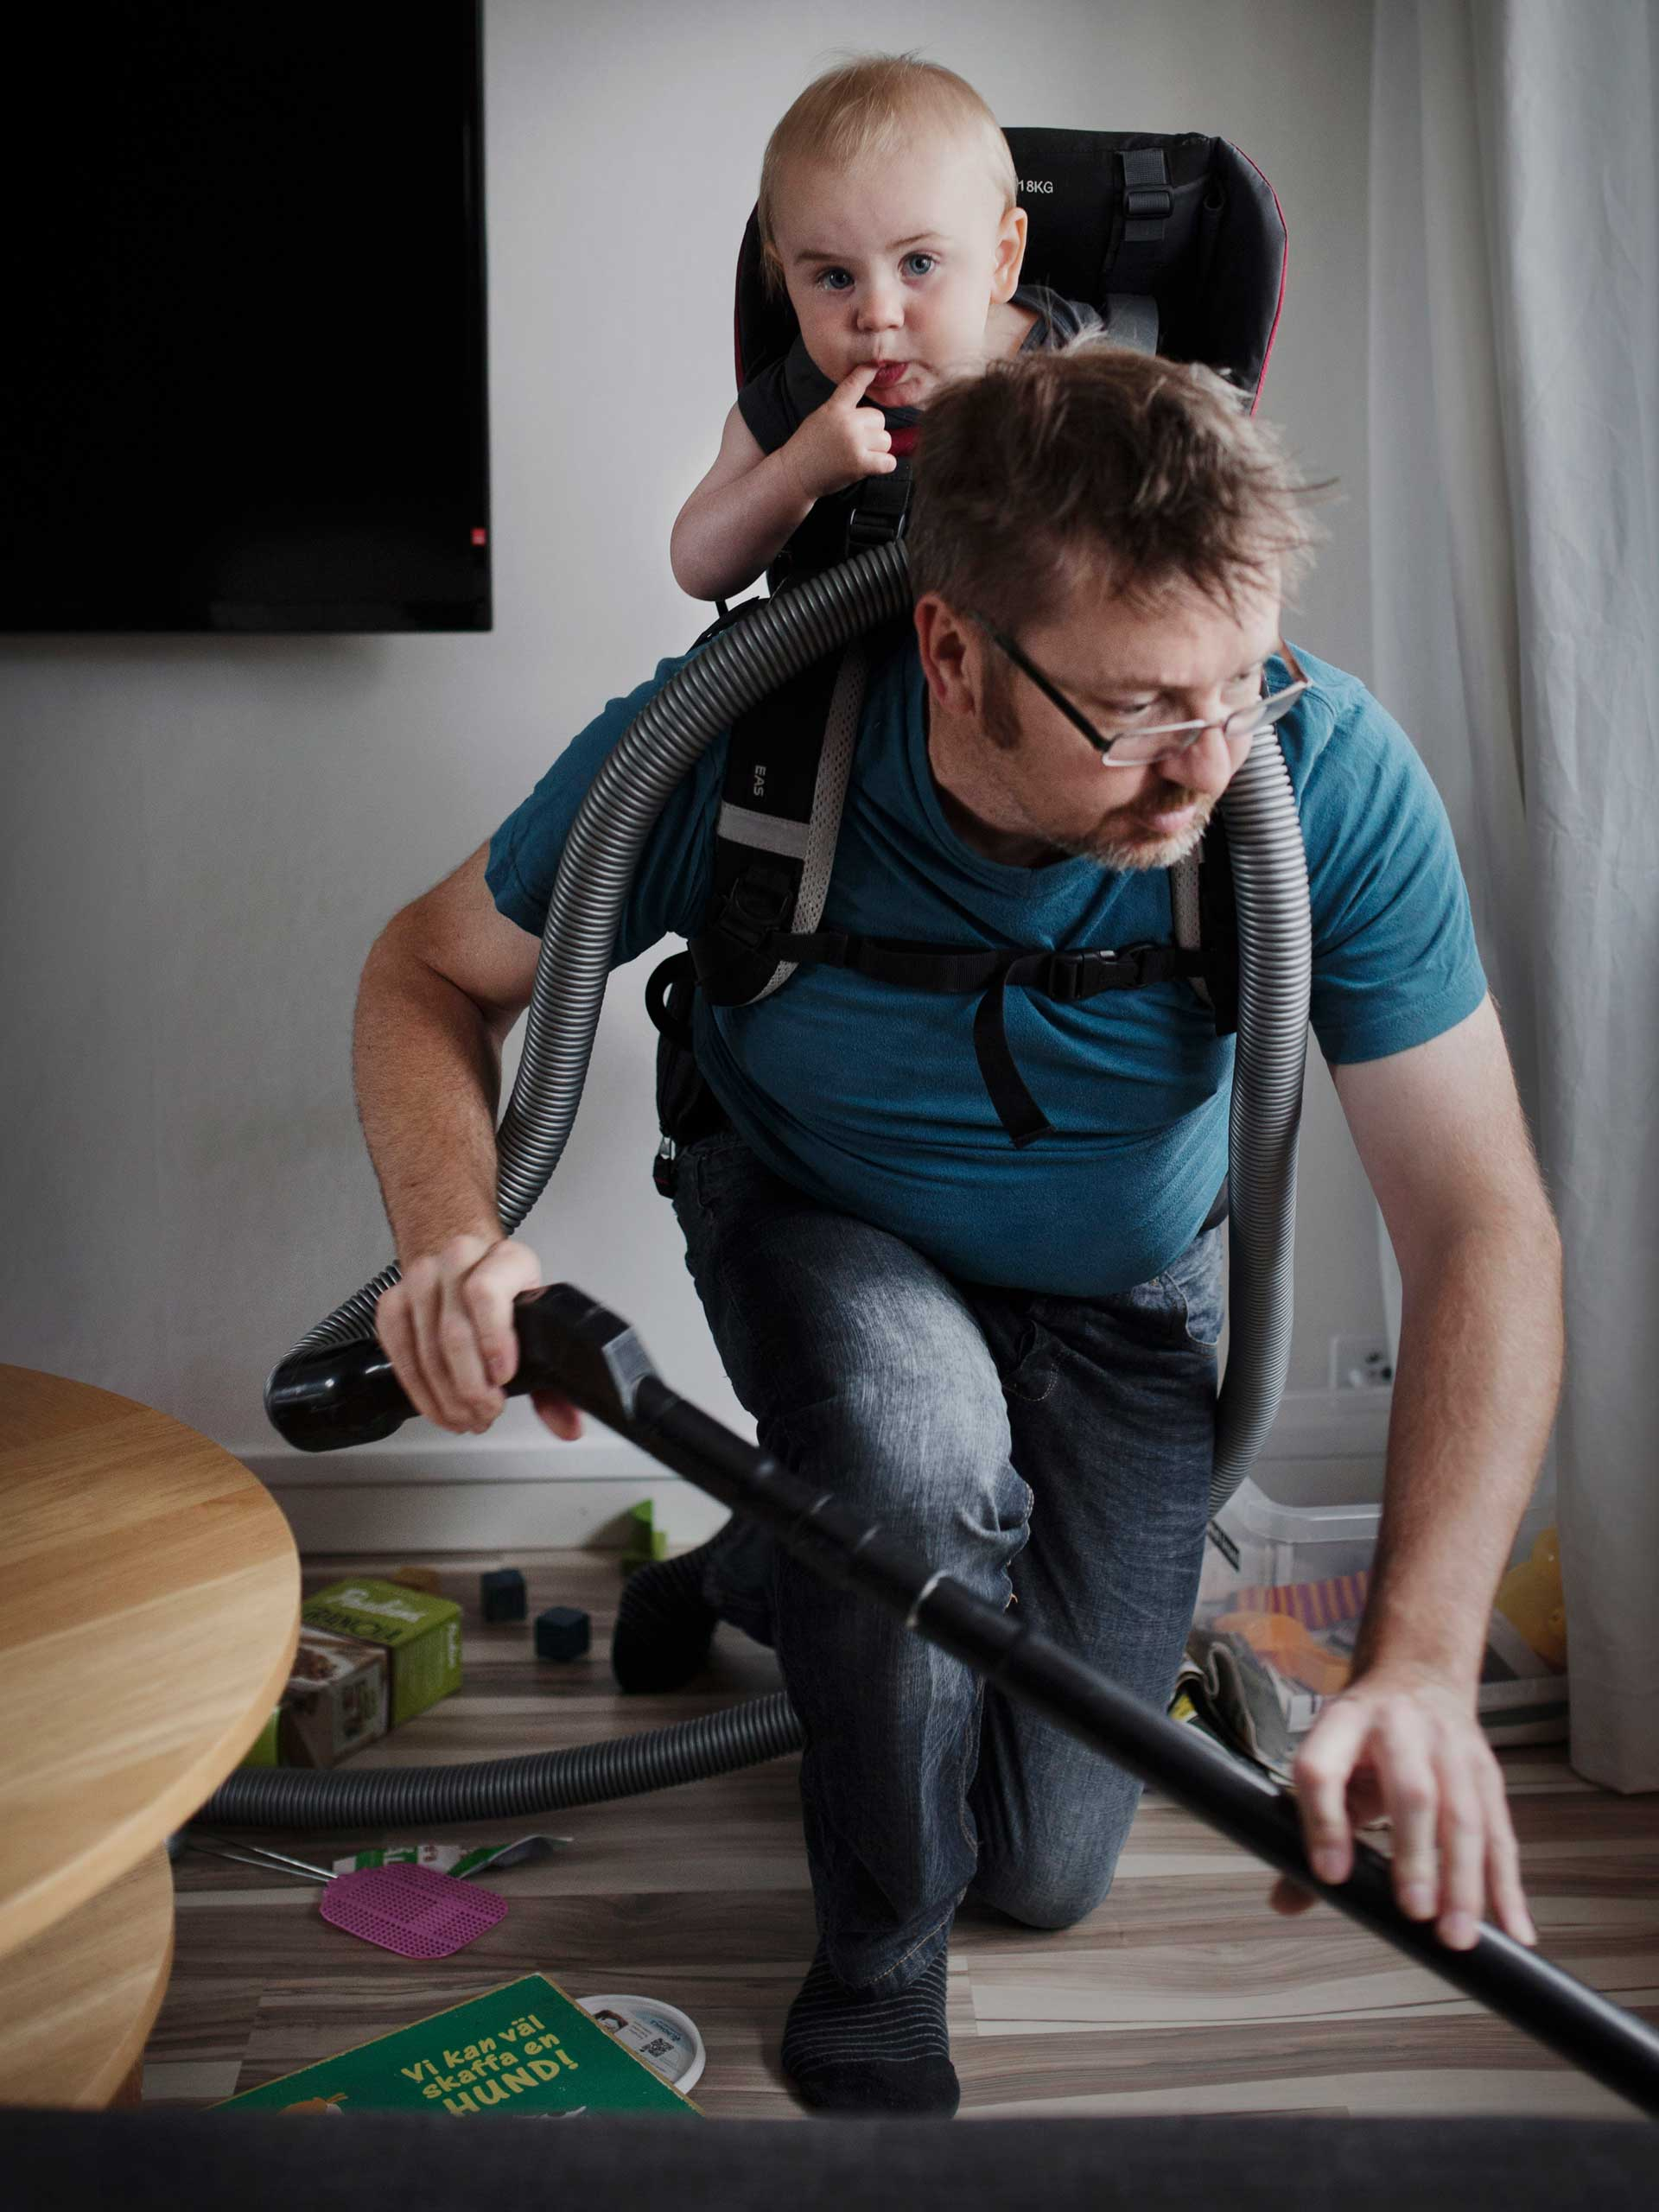 Nominated in the People Category.  Johan Bavman's work on Swedish dads.